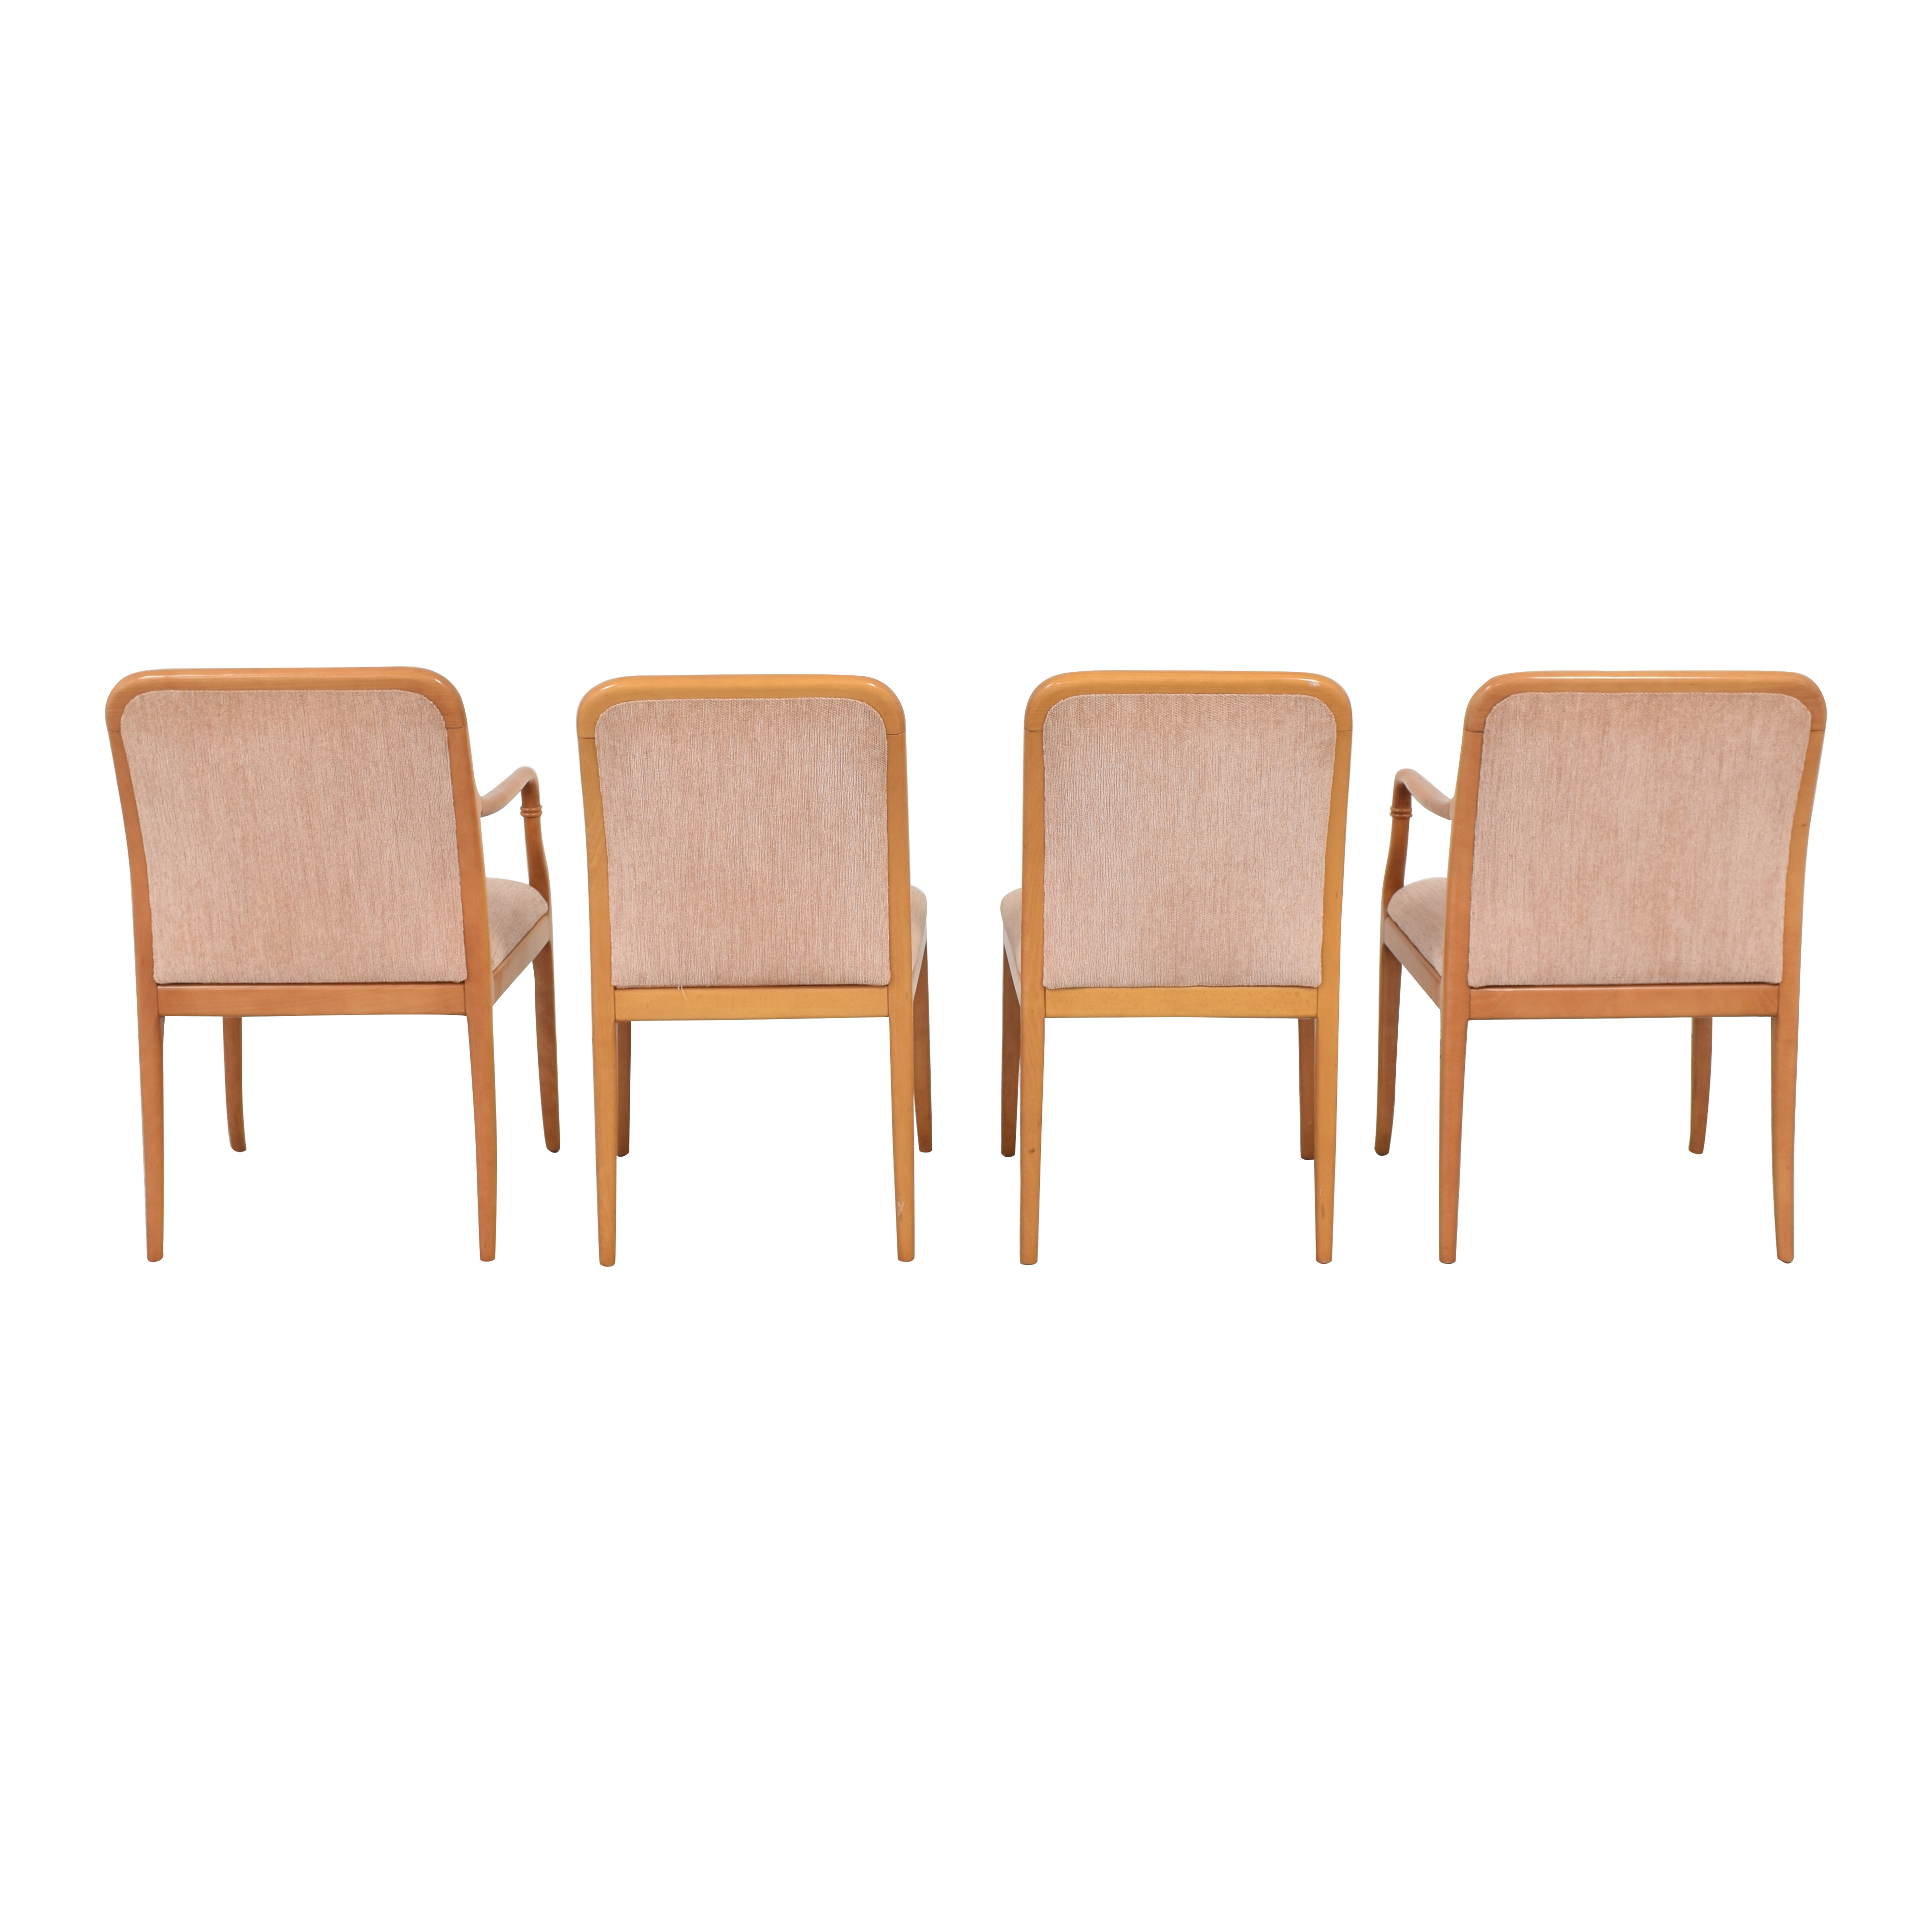 Directional Furniture Dining Chairs / Dining Chairs